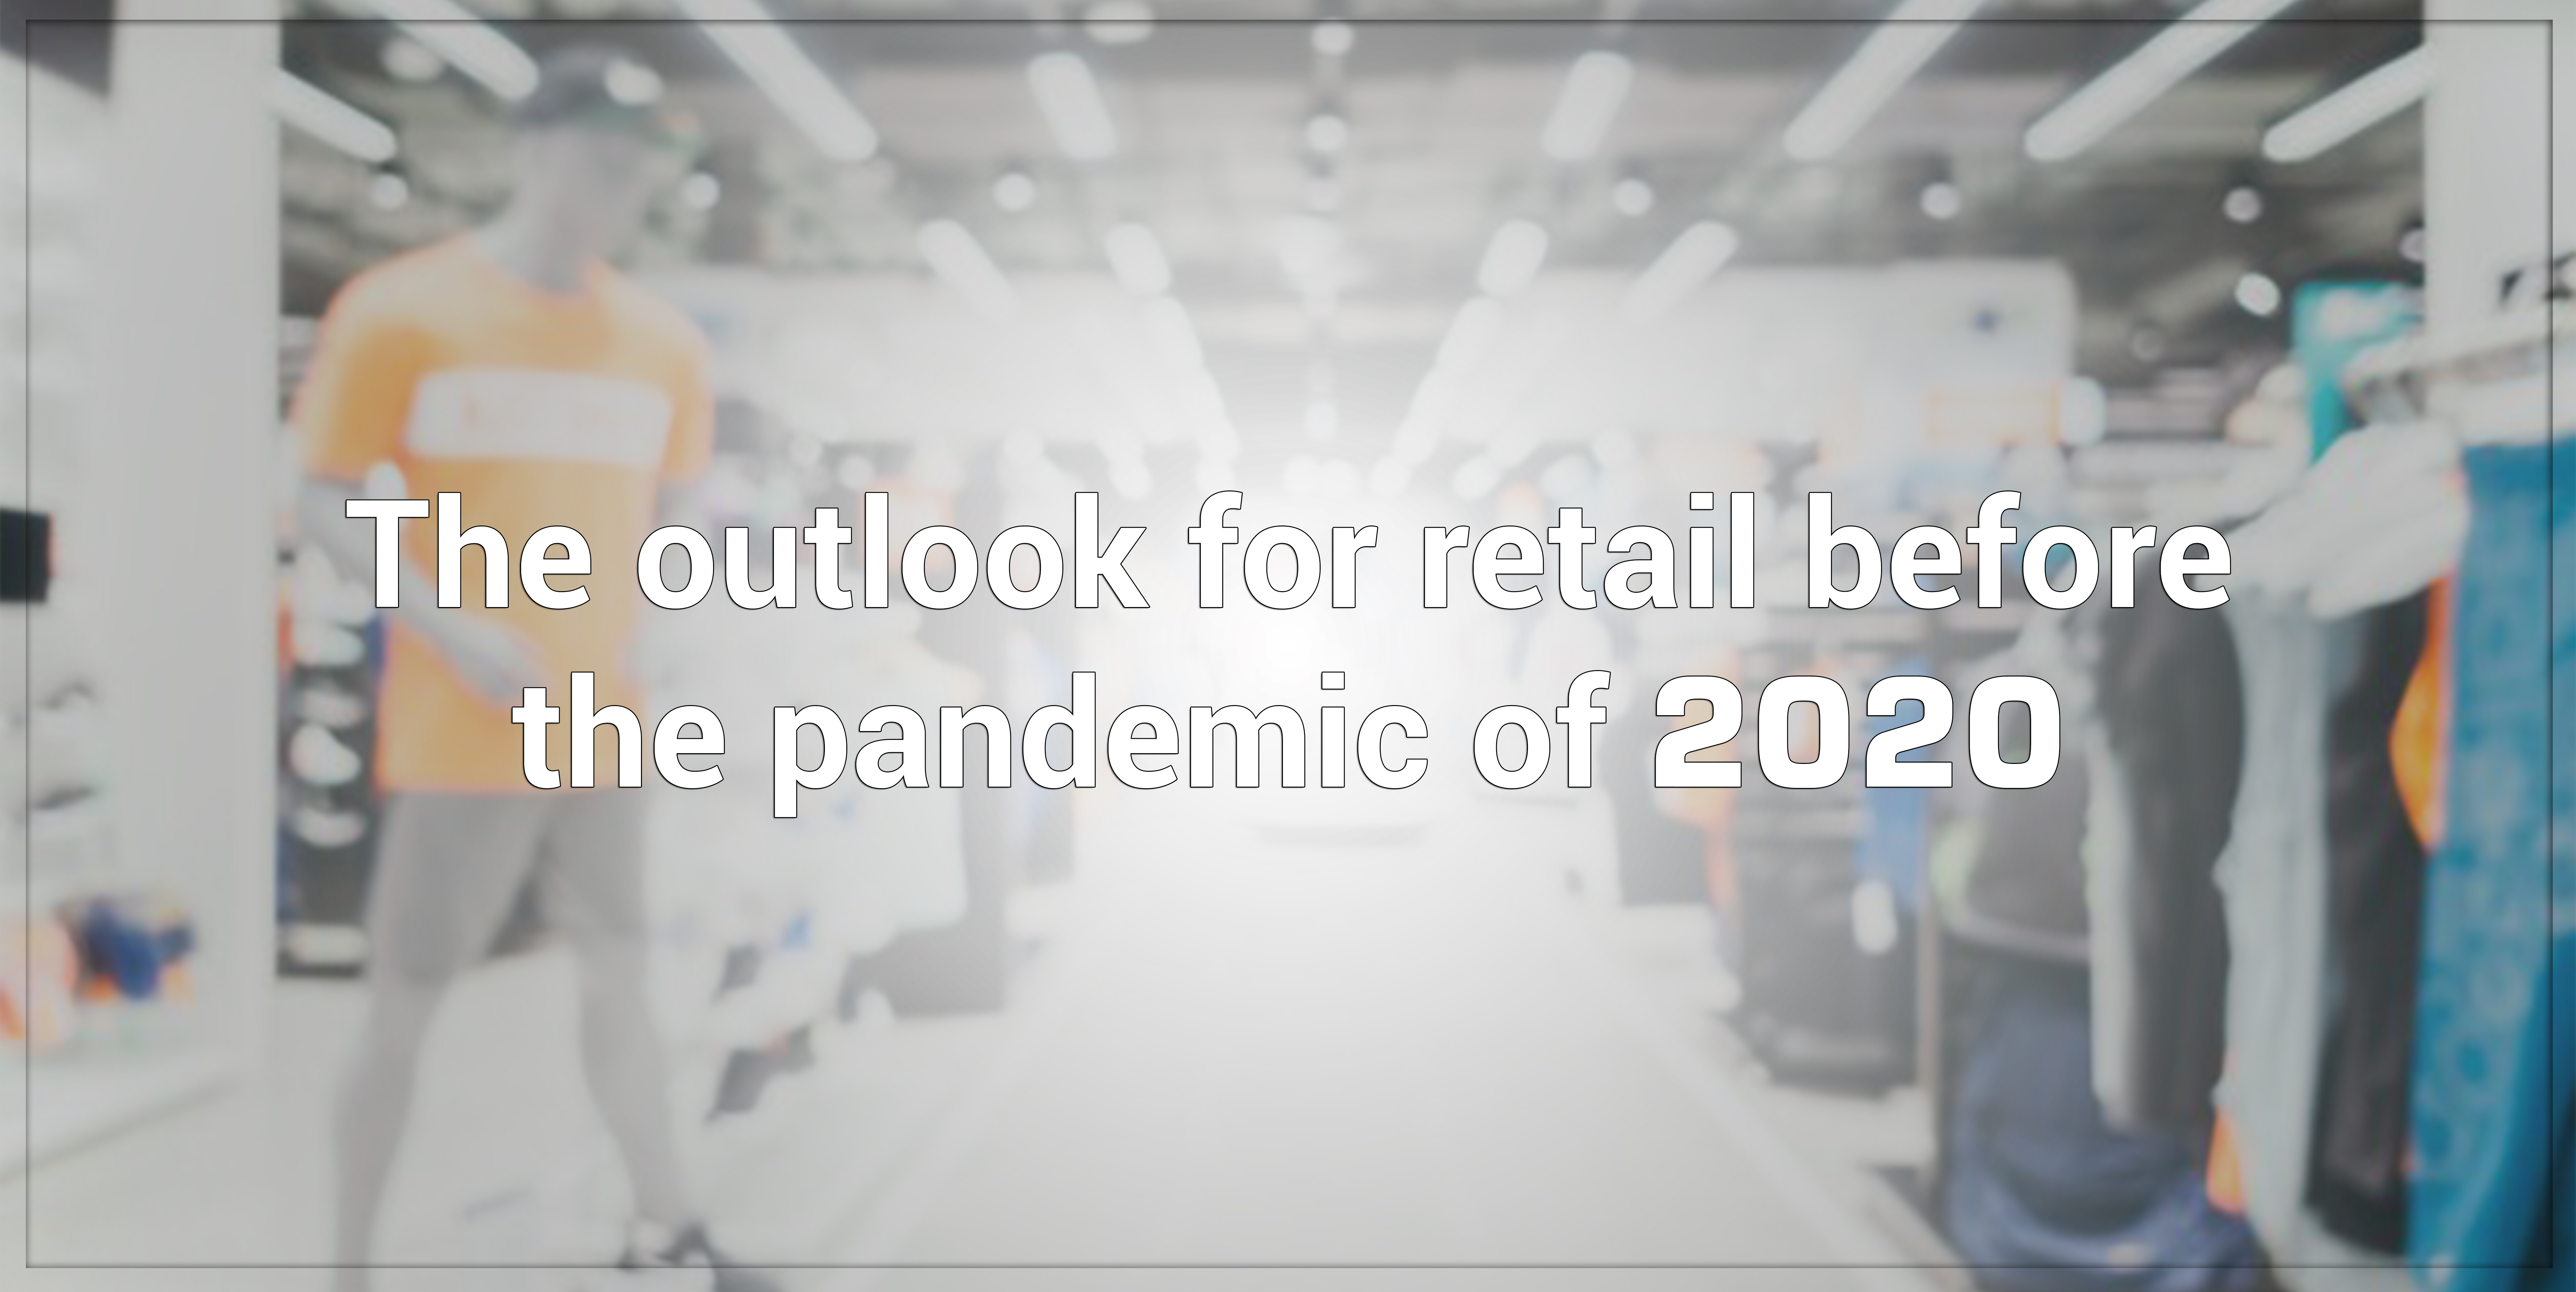 The outlook for retail before the pandemic of 2020